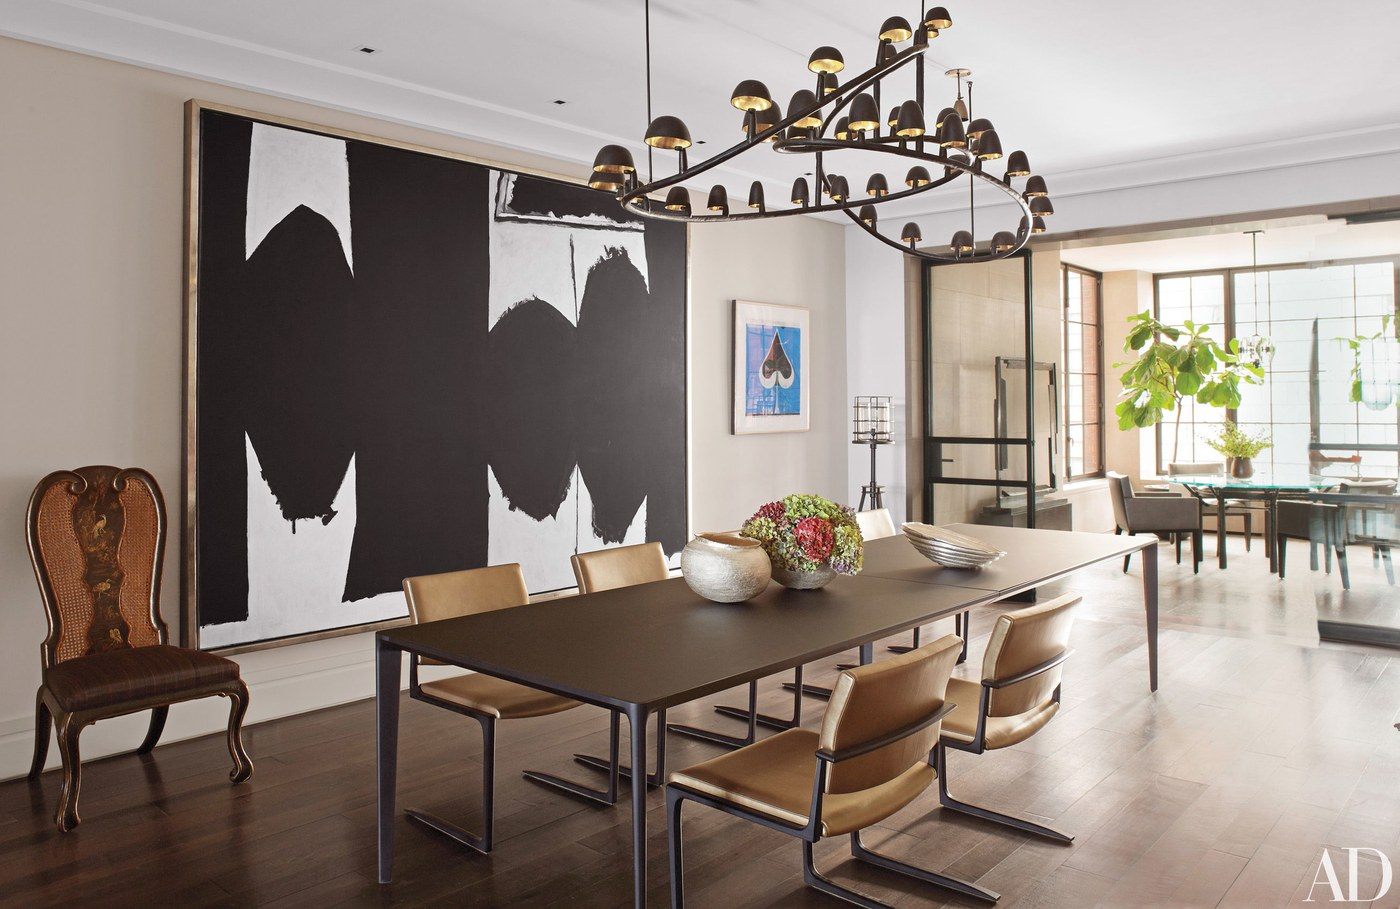 Women Empowerment - Holly Hunt's Chicago Apartment - holly hunt art collection - holly hunt showroom - holly hunt furniture - holly hunts home - Photo by Pieter Estersohn via architectural digest women empowerment Women Empowerment in Design: Holly Hunt holly hunt chicago apartment 09